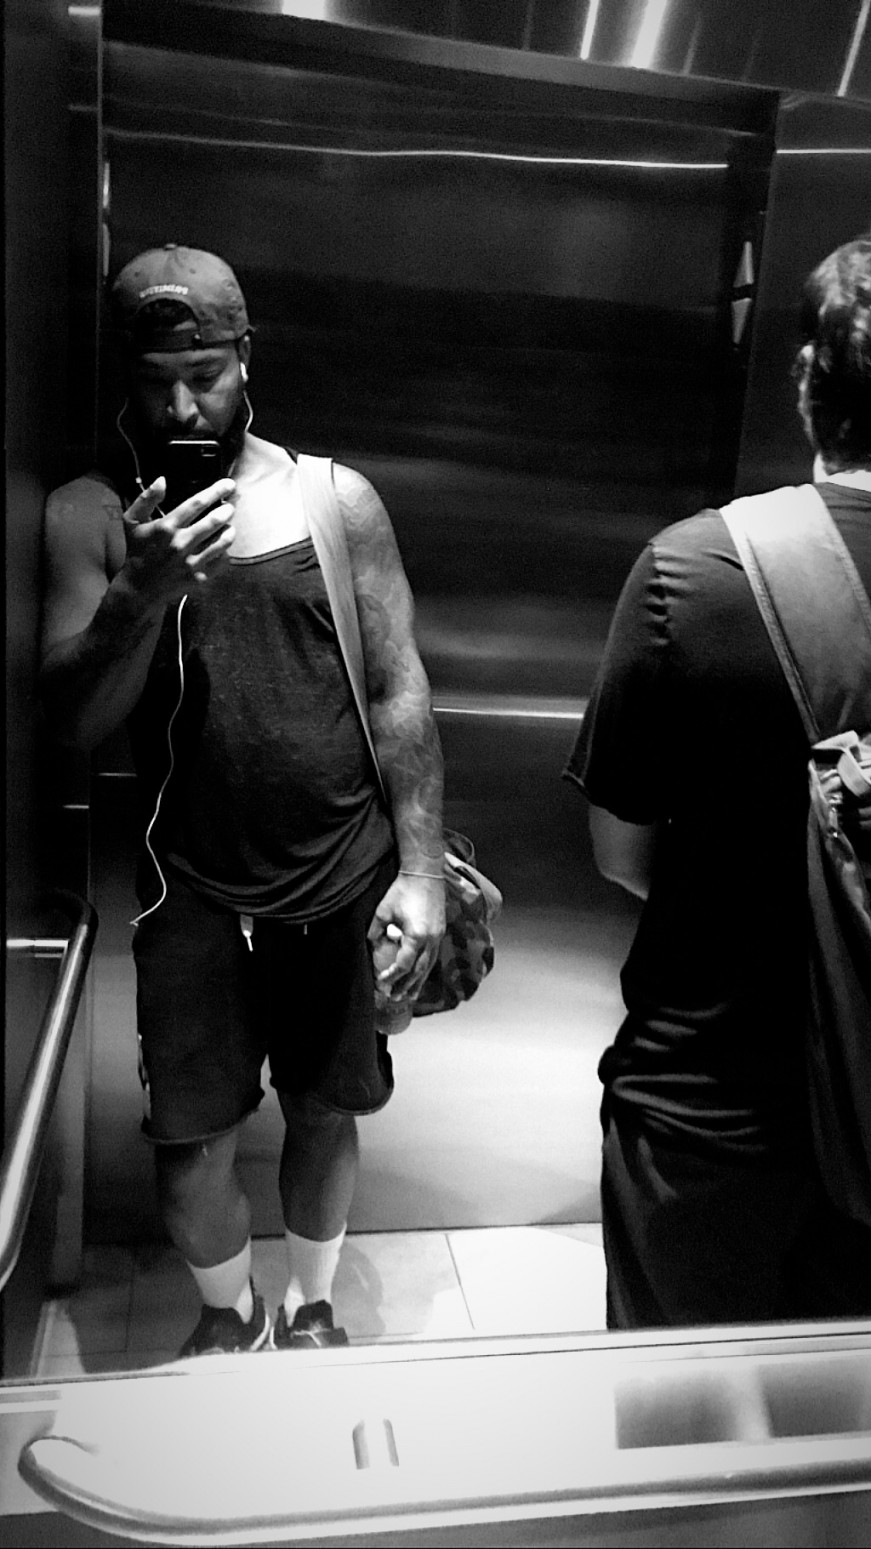 elevator black and white